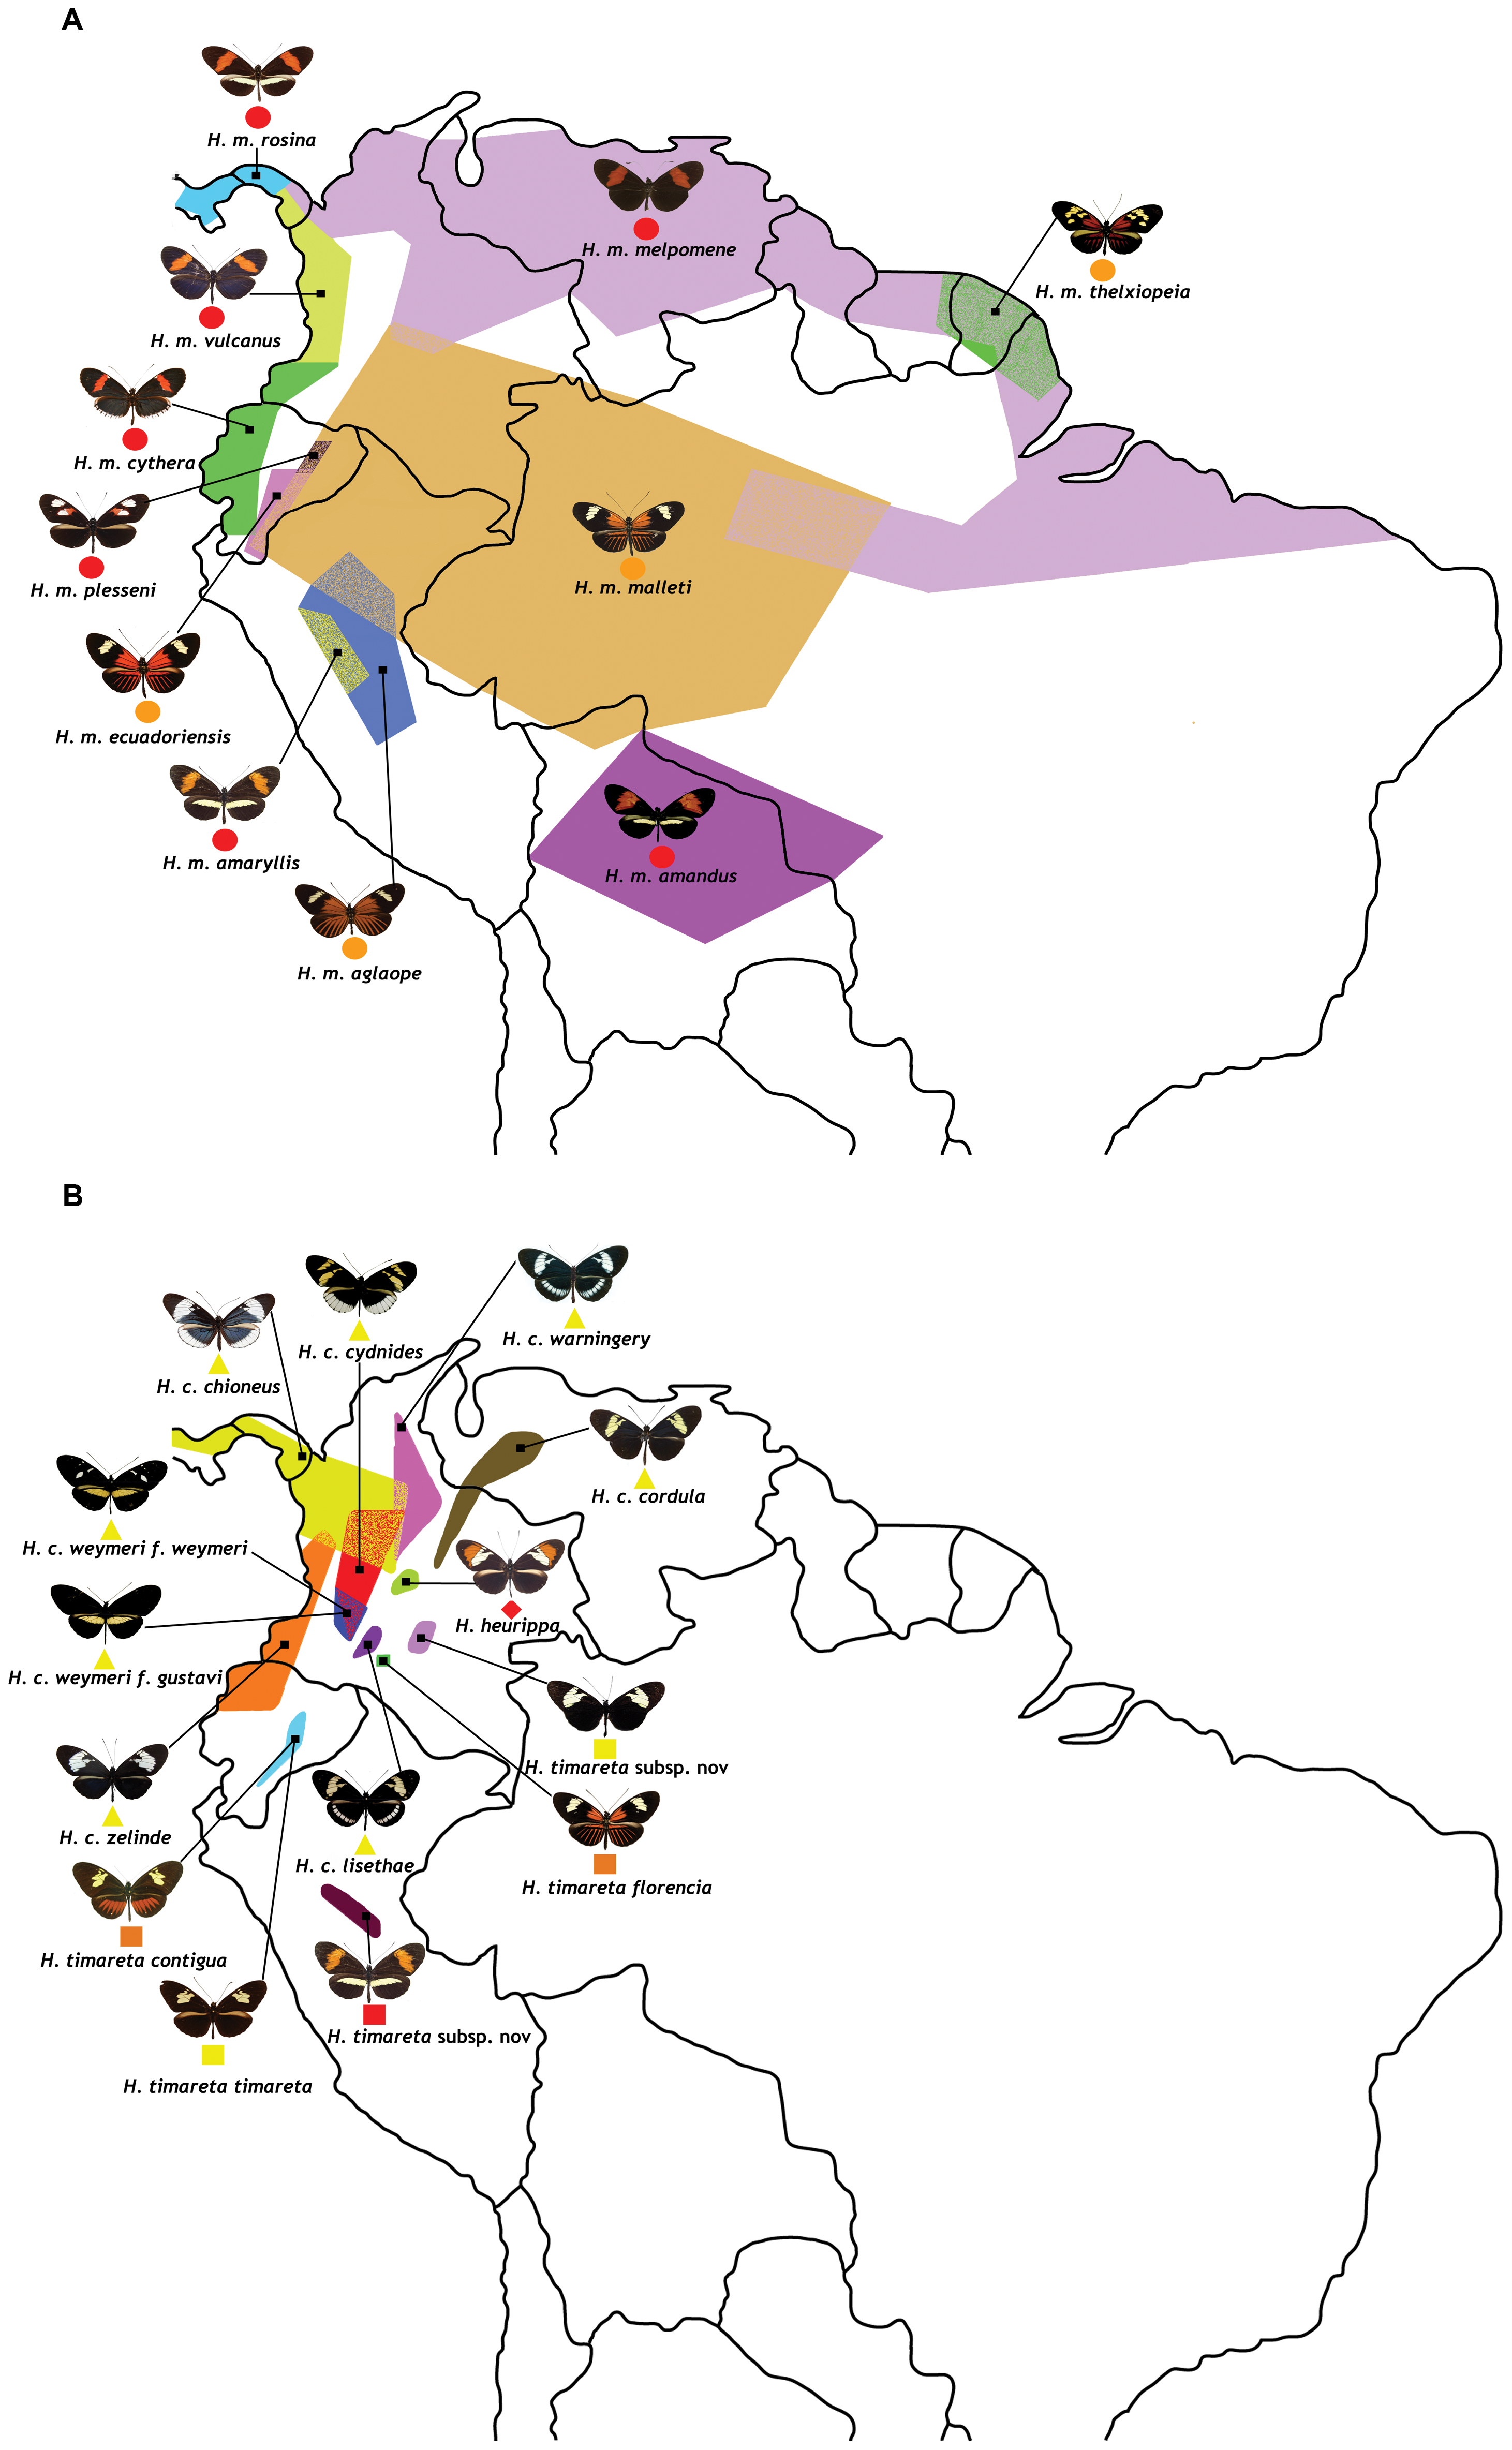 Geographic distribution and phenotype radiation of the species and races used in this study.